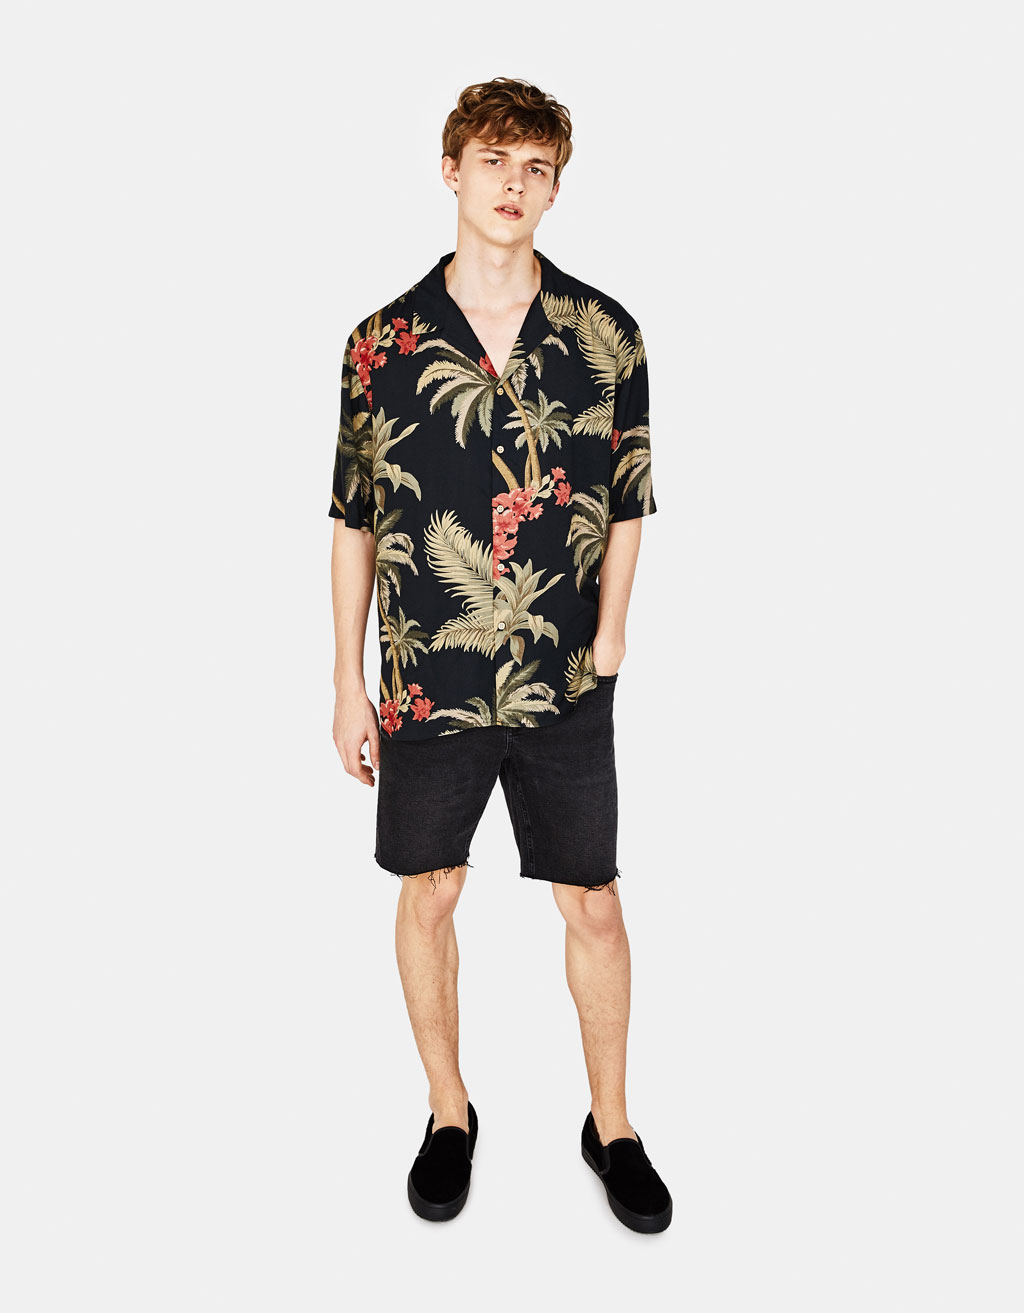 Camisa com estampado tropical